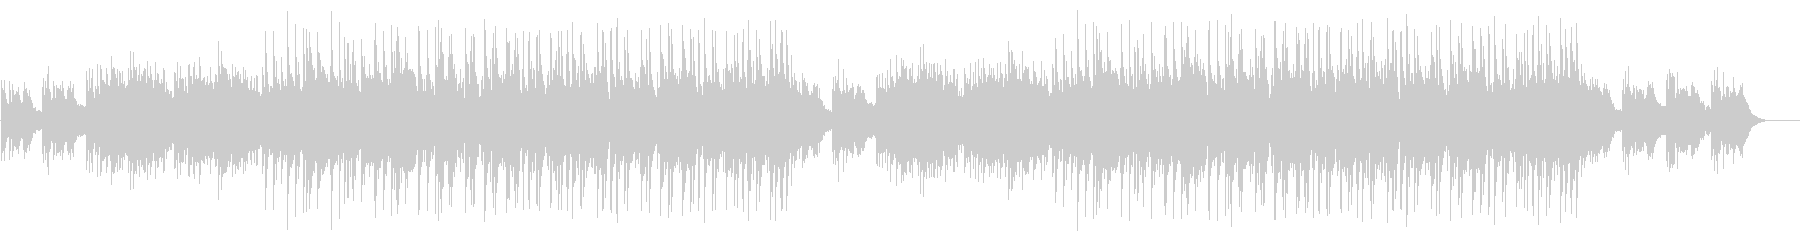 Transparent and flowing BGM's unreproduced waveform